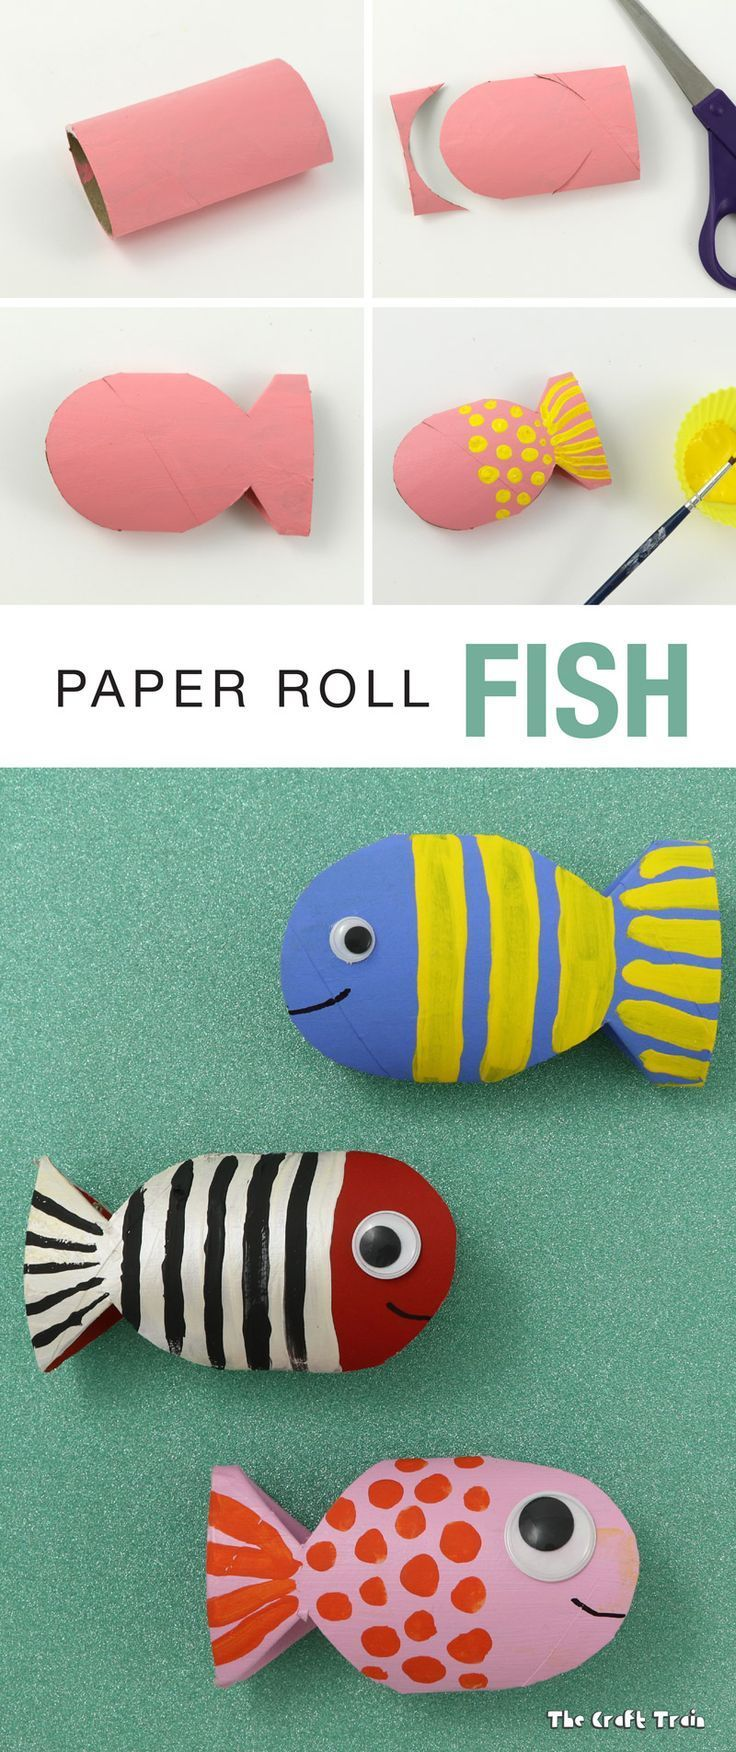 Arts and crafts for a 1 year old - Paper Roll Fish Recycling Craft